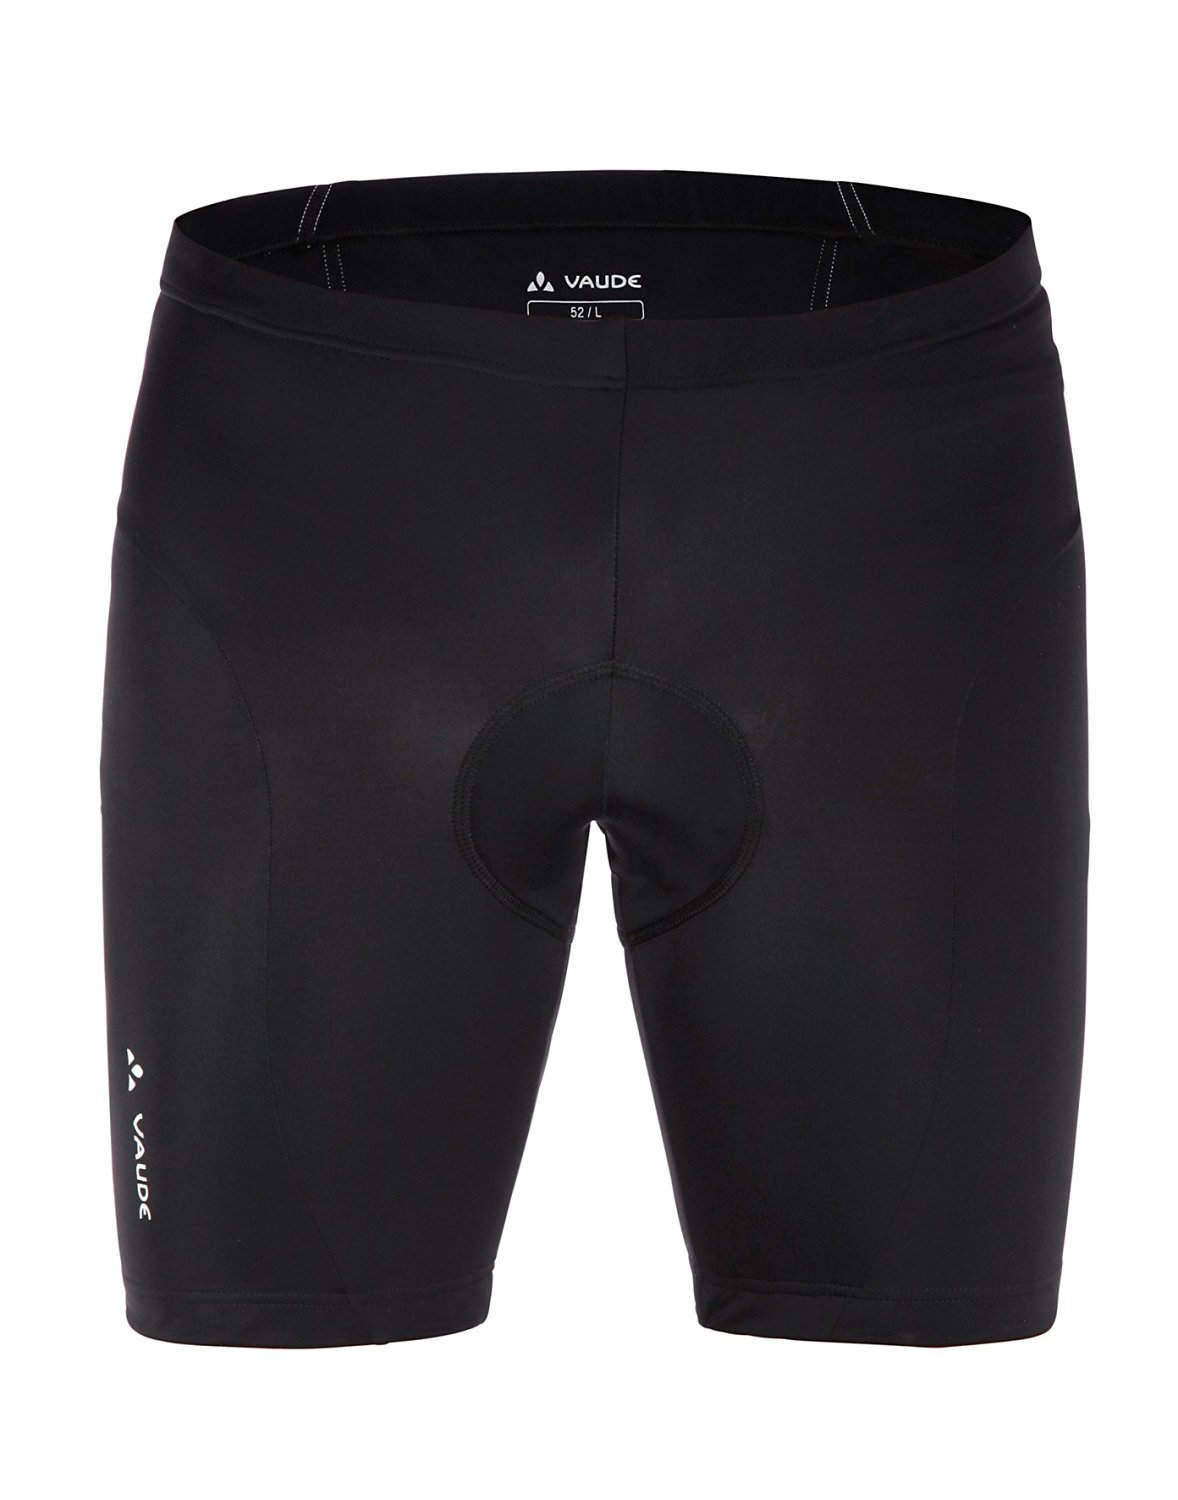 62c24aee8 Get Quotations · Vaude Active Cycle undershorts Gentlemen black